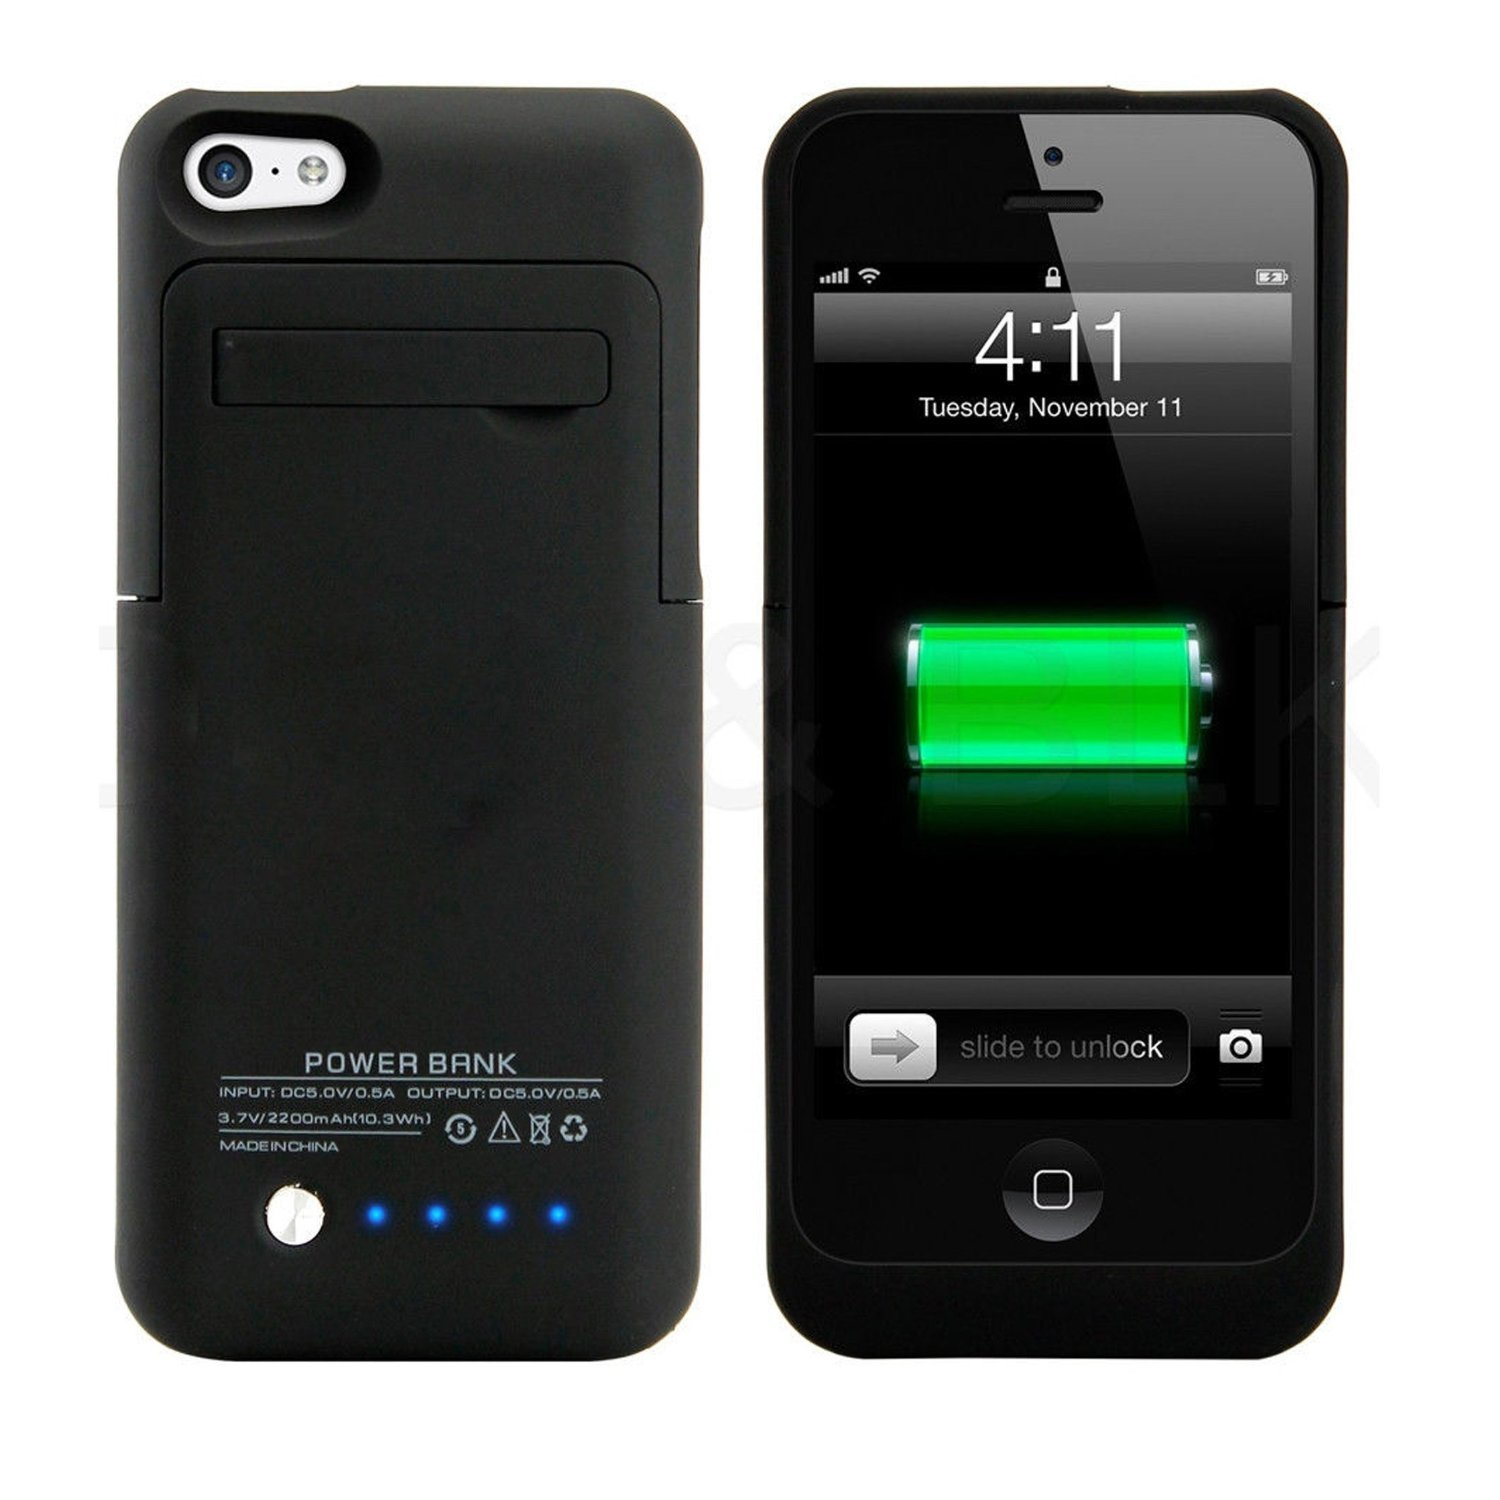 new iphone 5 5c 5s battery case 2200mah extended protective great charger pack ebay. Black Bedroom Furniture Sets. Home Design Ideas